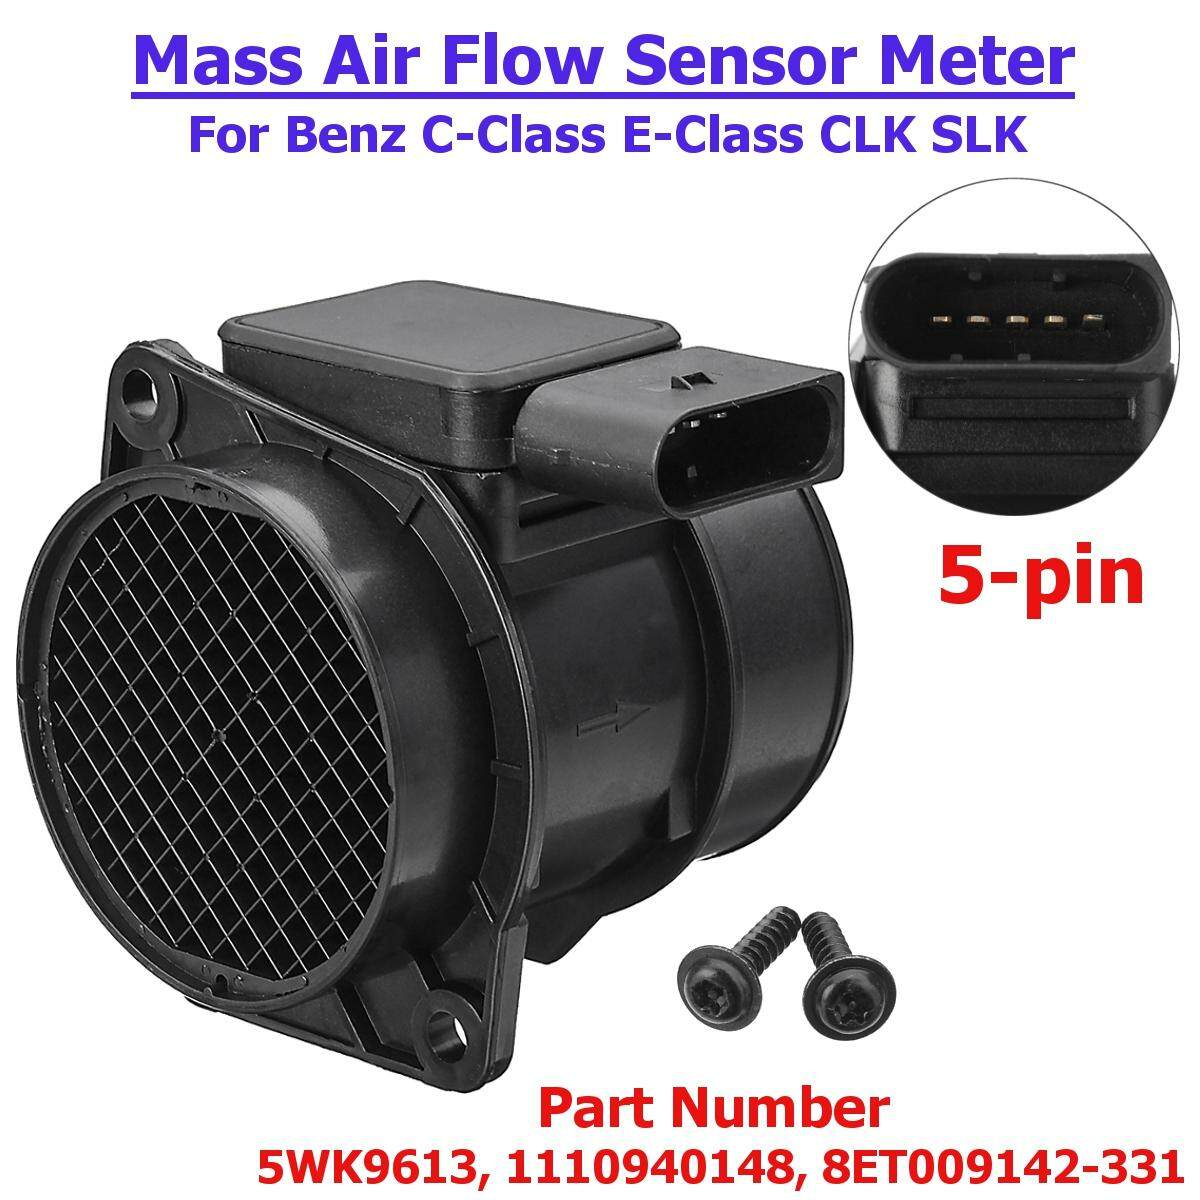 5WK9638 MAF Meter Mass Air Flow Sensor Fit Mercedes Benz C-CLASS E-CLASS CLK SLK